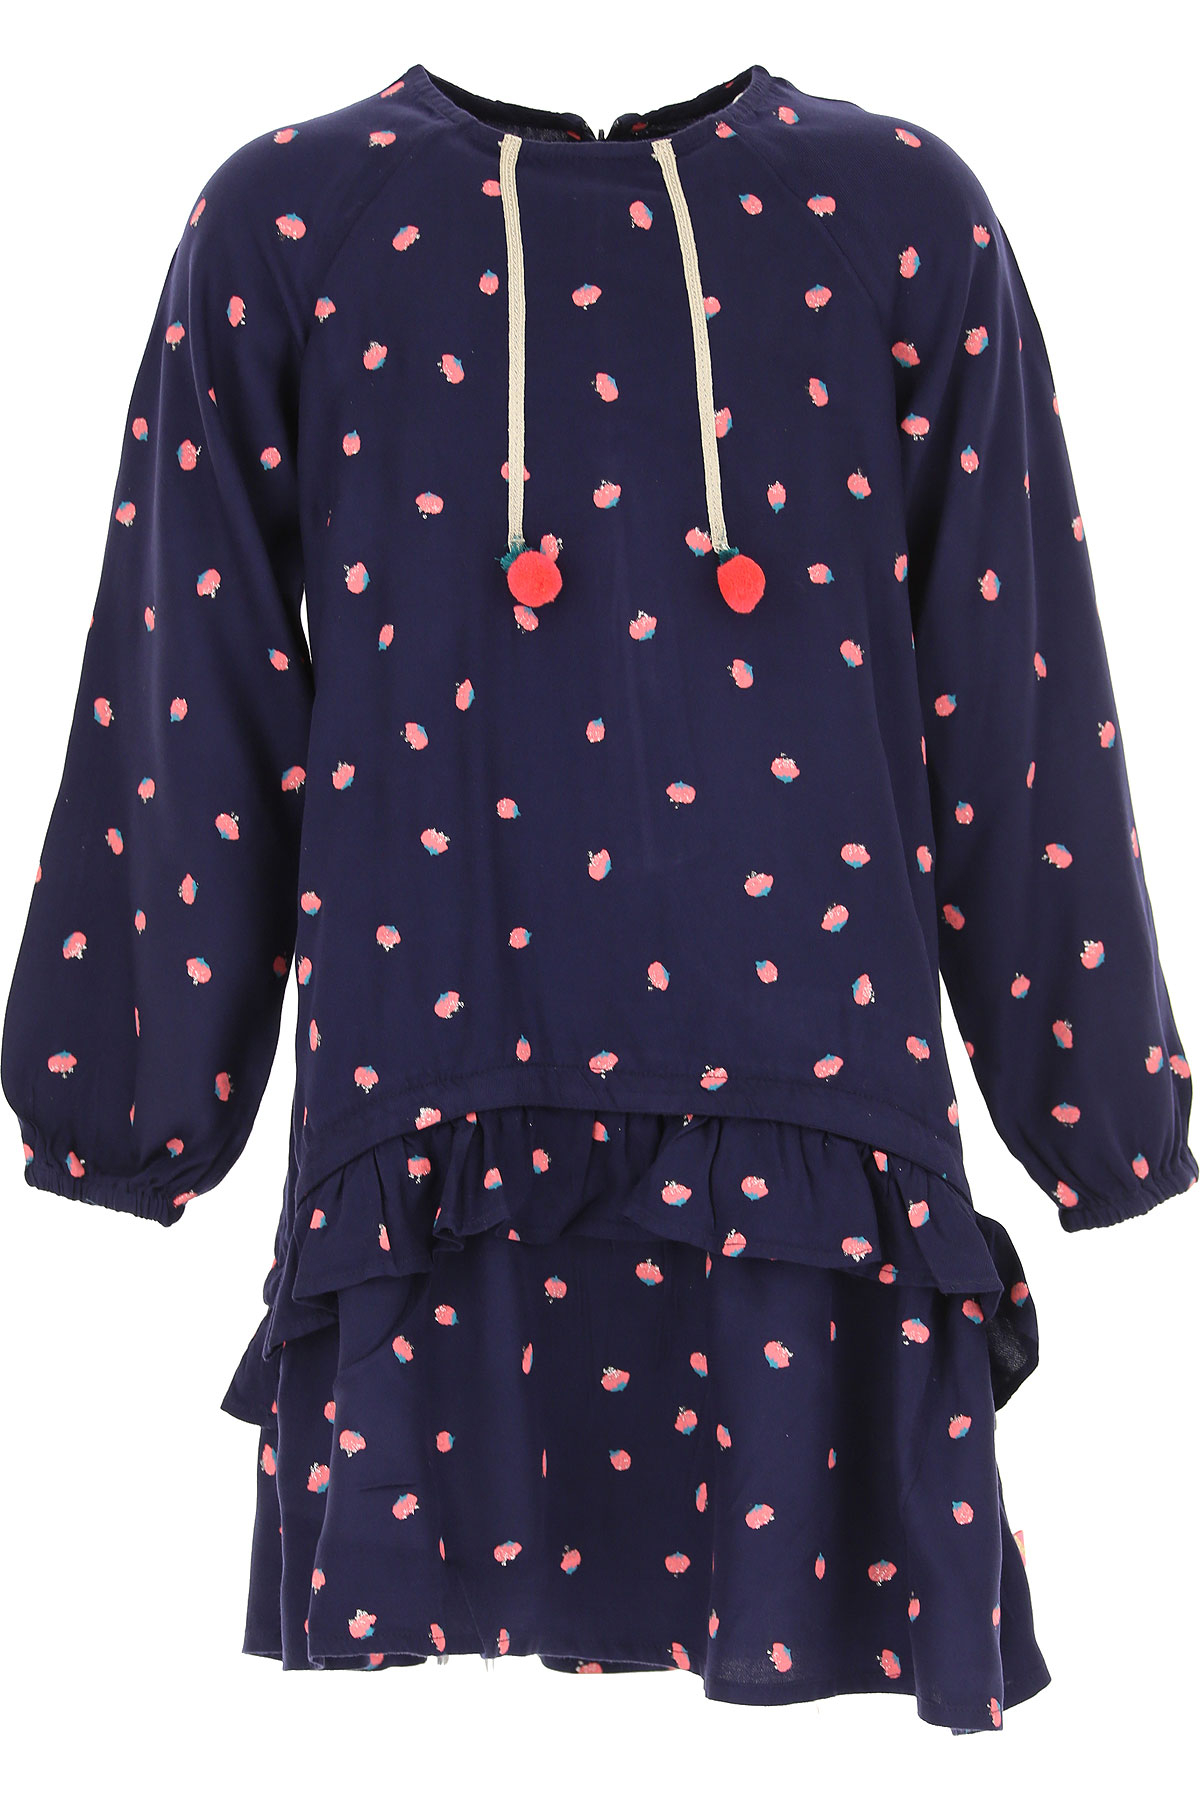 Billieblush Girls Dress On Sale, navy, Viscose, 2019, 10Y 12Y 2Y 6Y 8Y